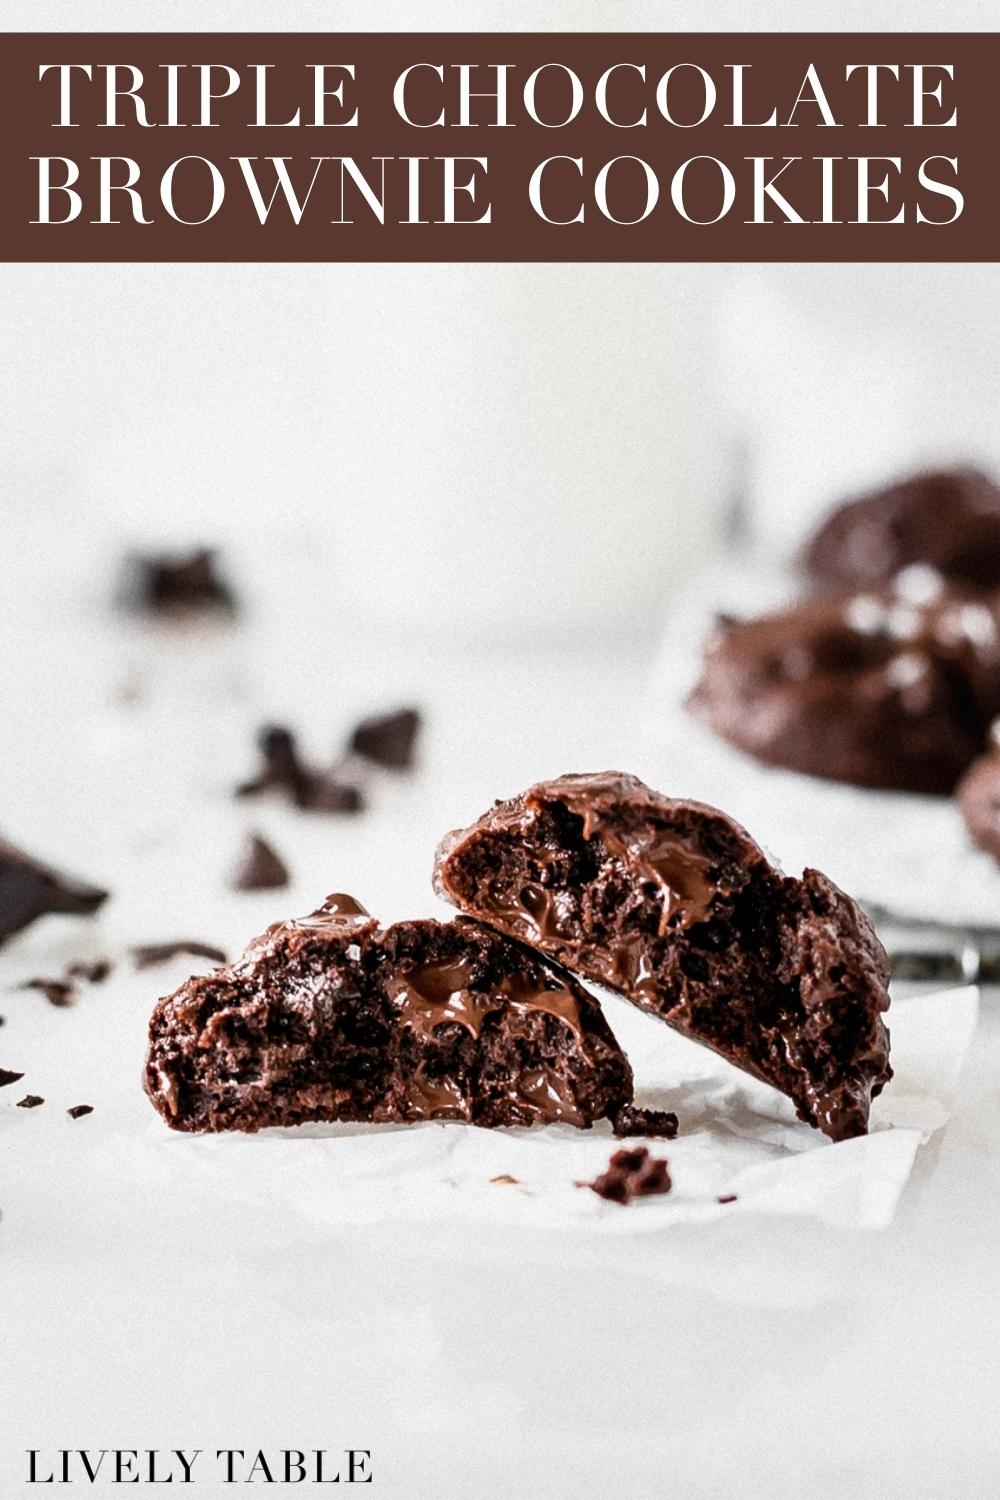 Triple Chocolate Cookies, loaded with three kinds of chocolate, are a rich and decadent collision of brownies and cookies. Just a couple of bites and your chocolate cravings will be satisfied! #nutfree #triplechocolate #dessert #cookies #chocolatetreats #valentinesdaytreats